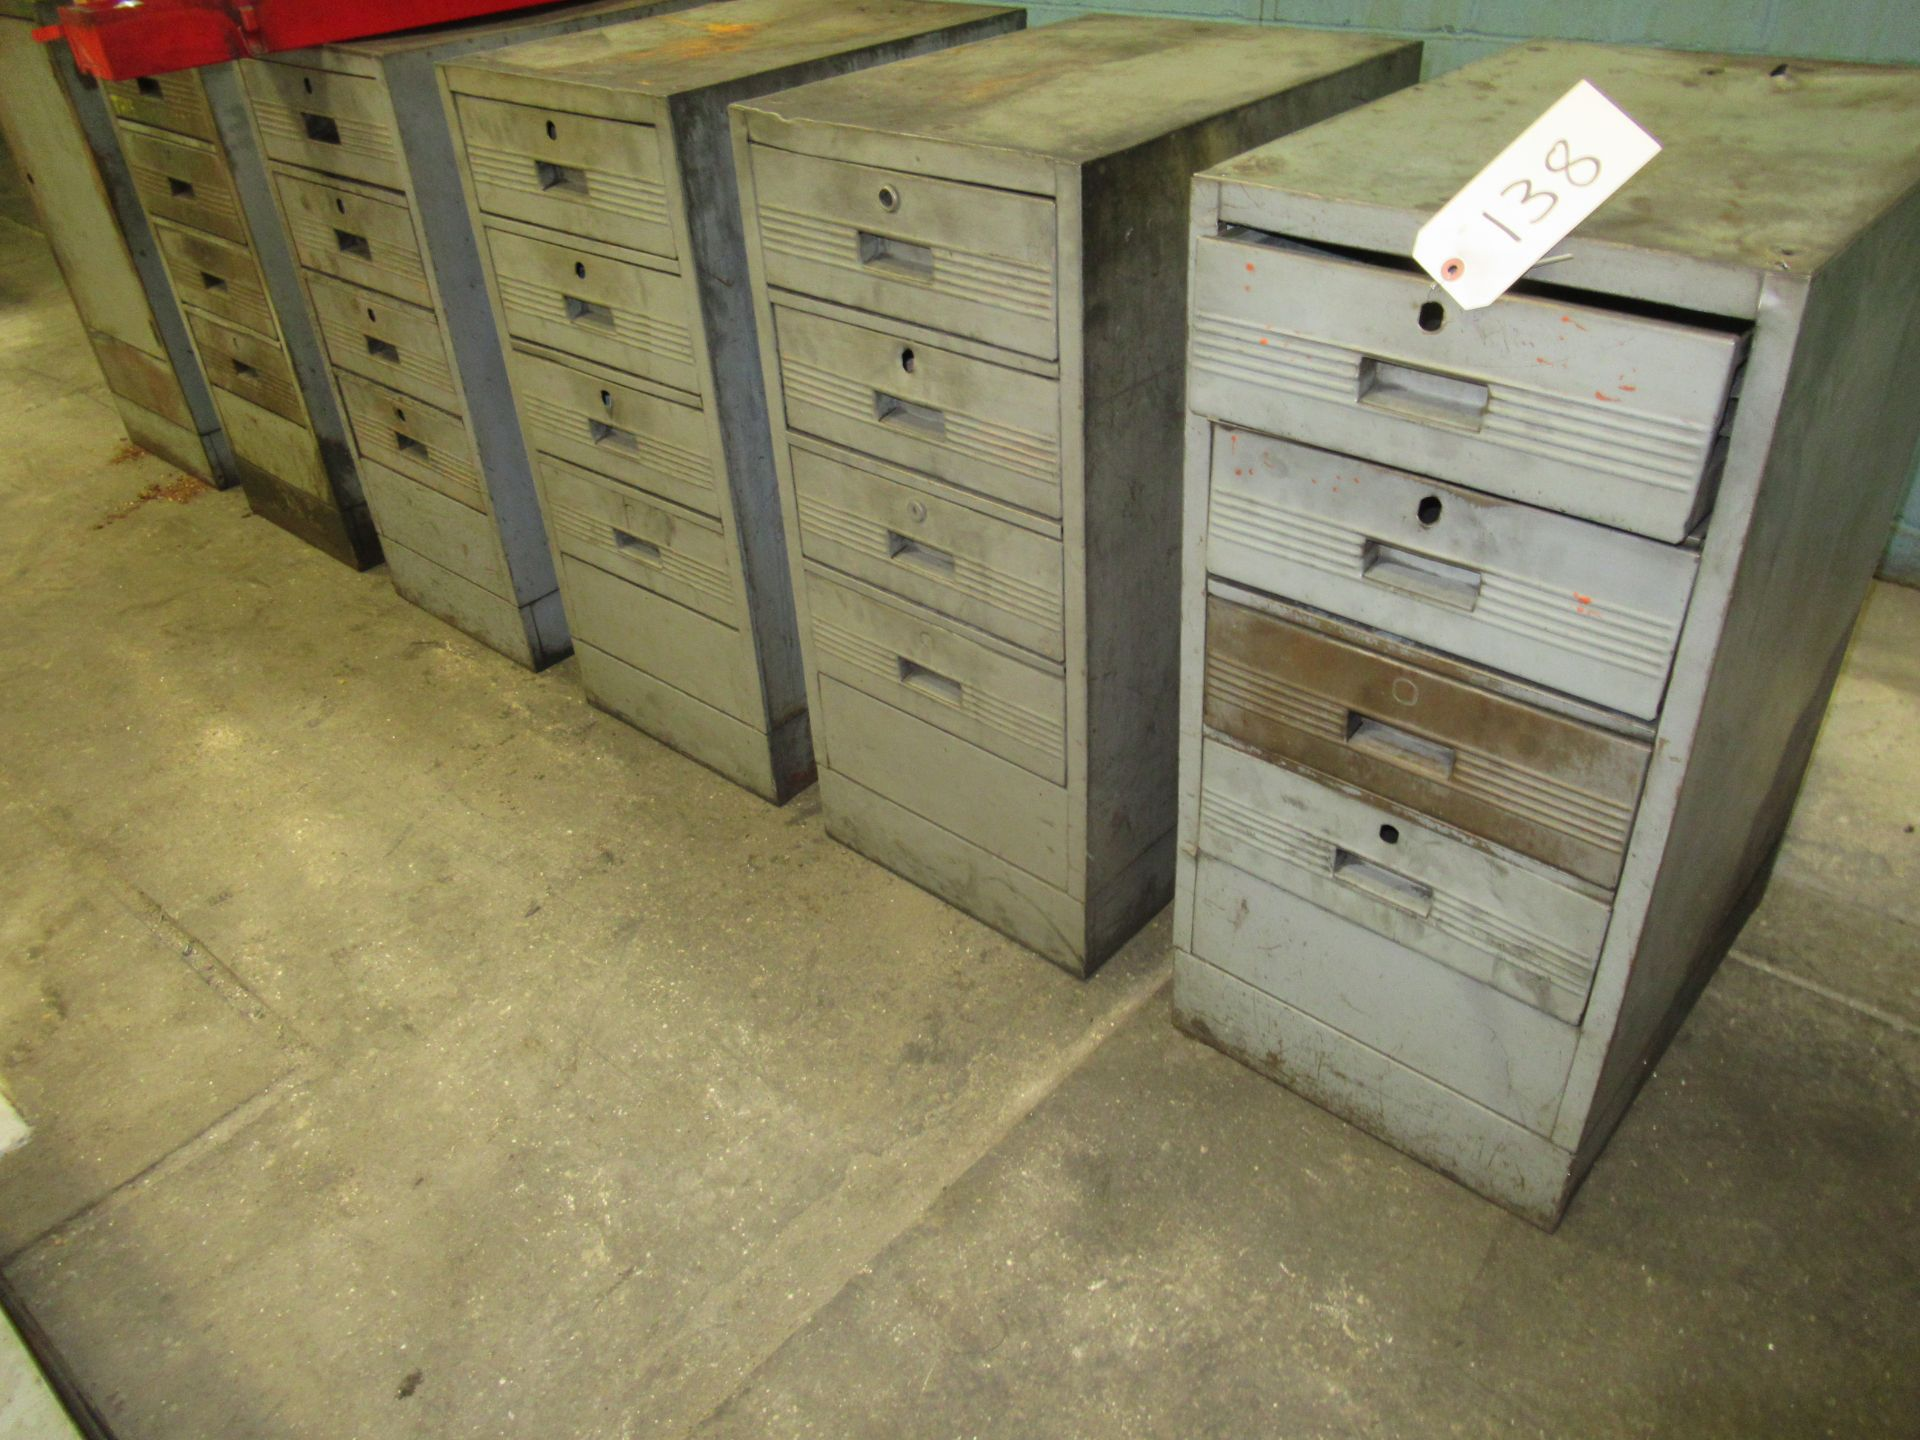 (9) TOOL CABINETS